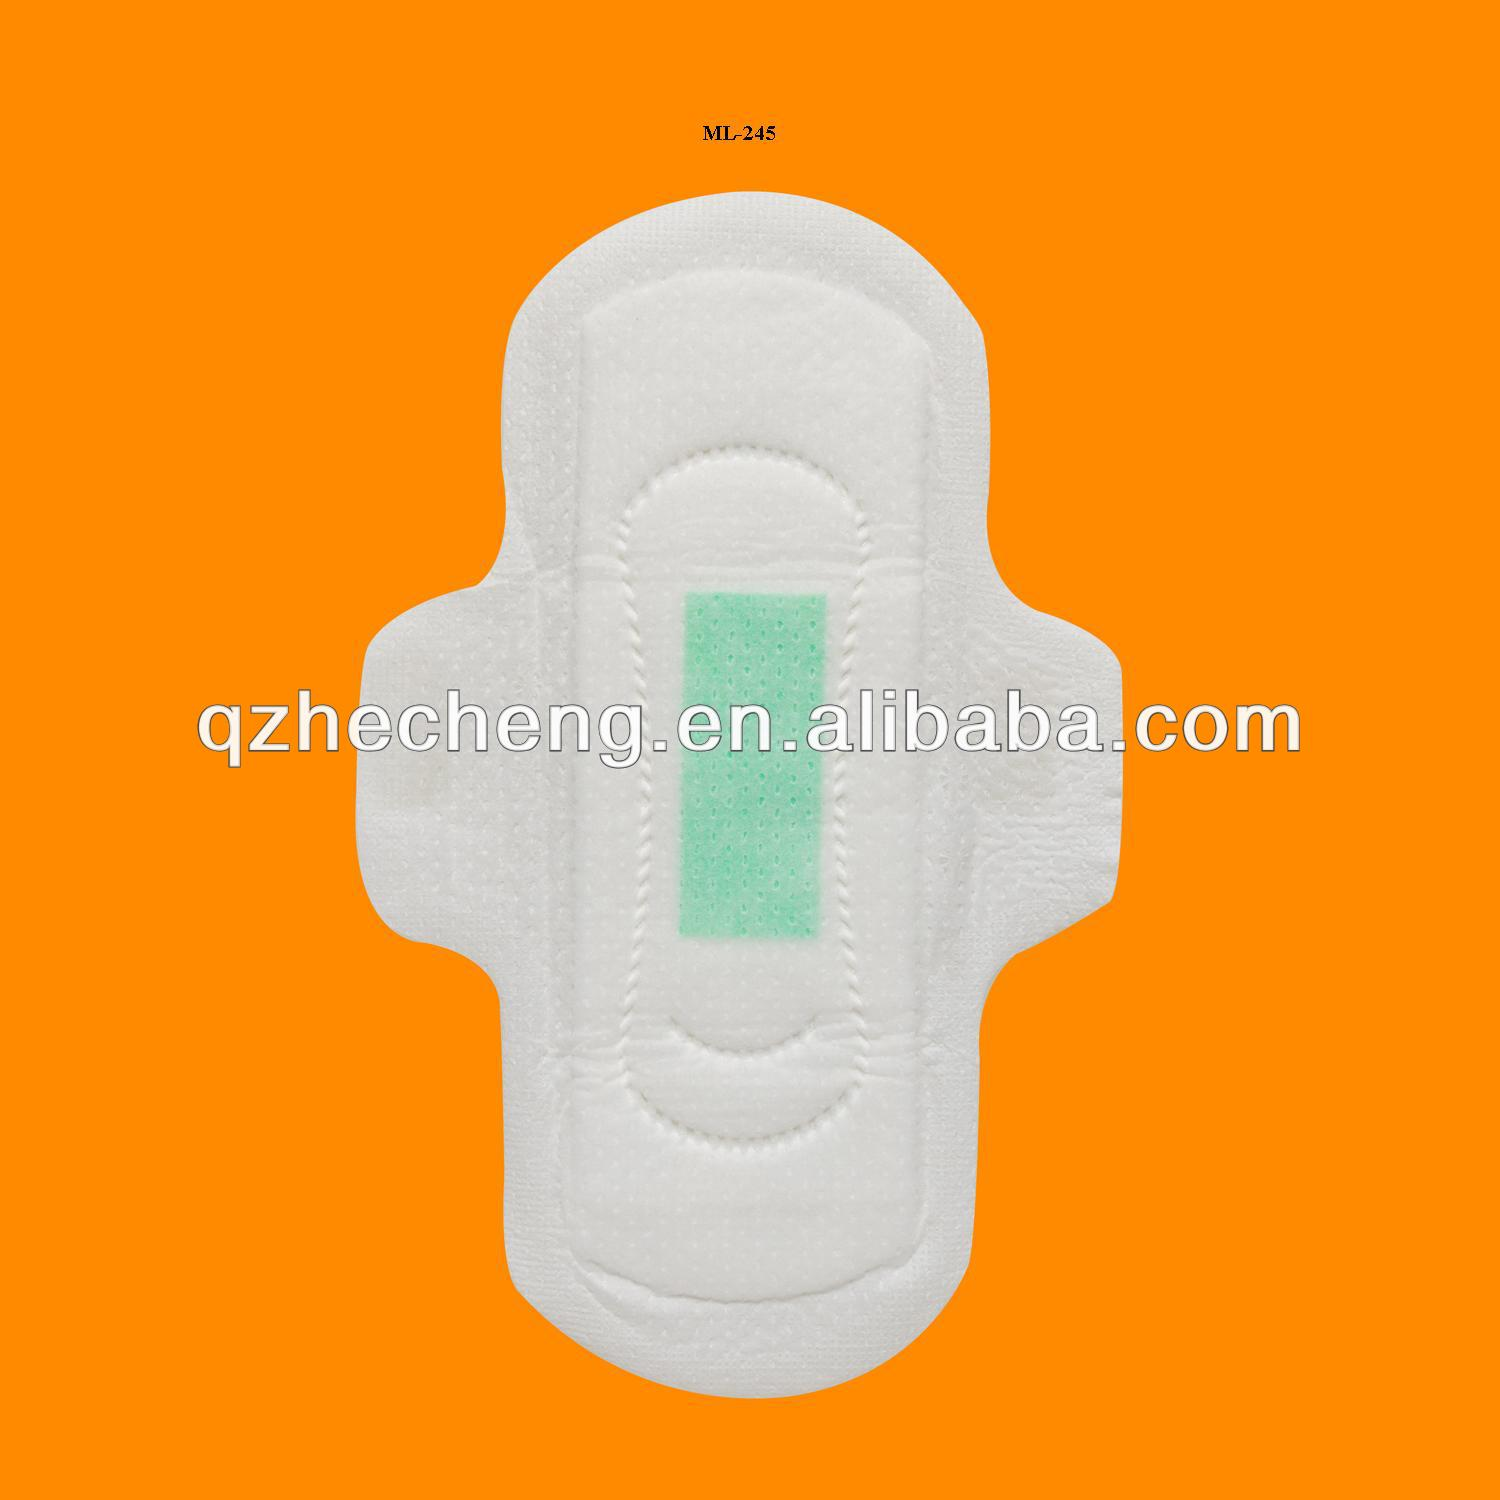 Ultra thin Anion strip sanitary towel ML-245